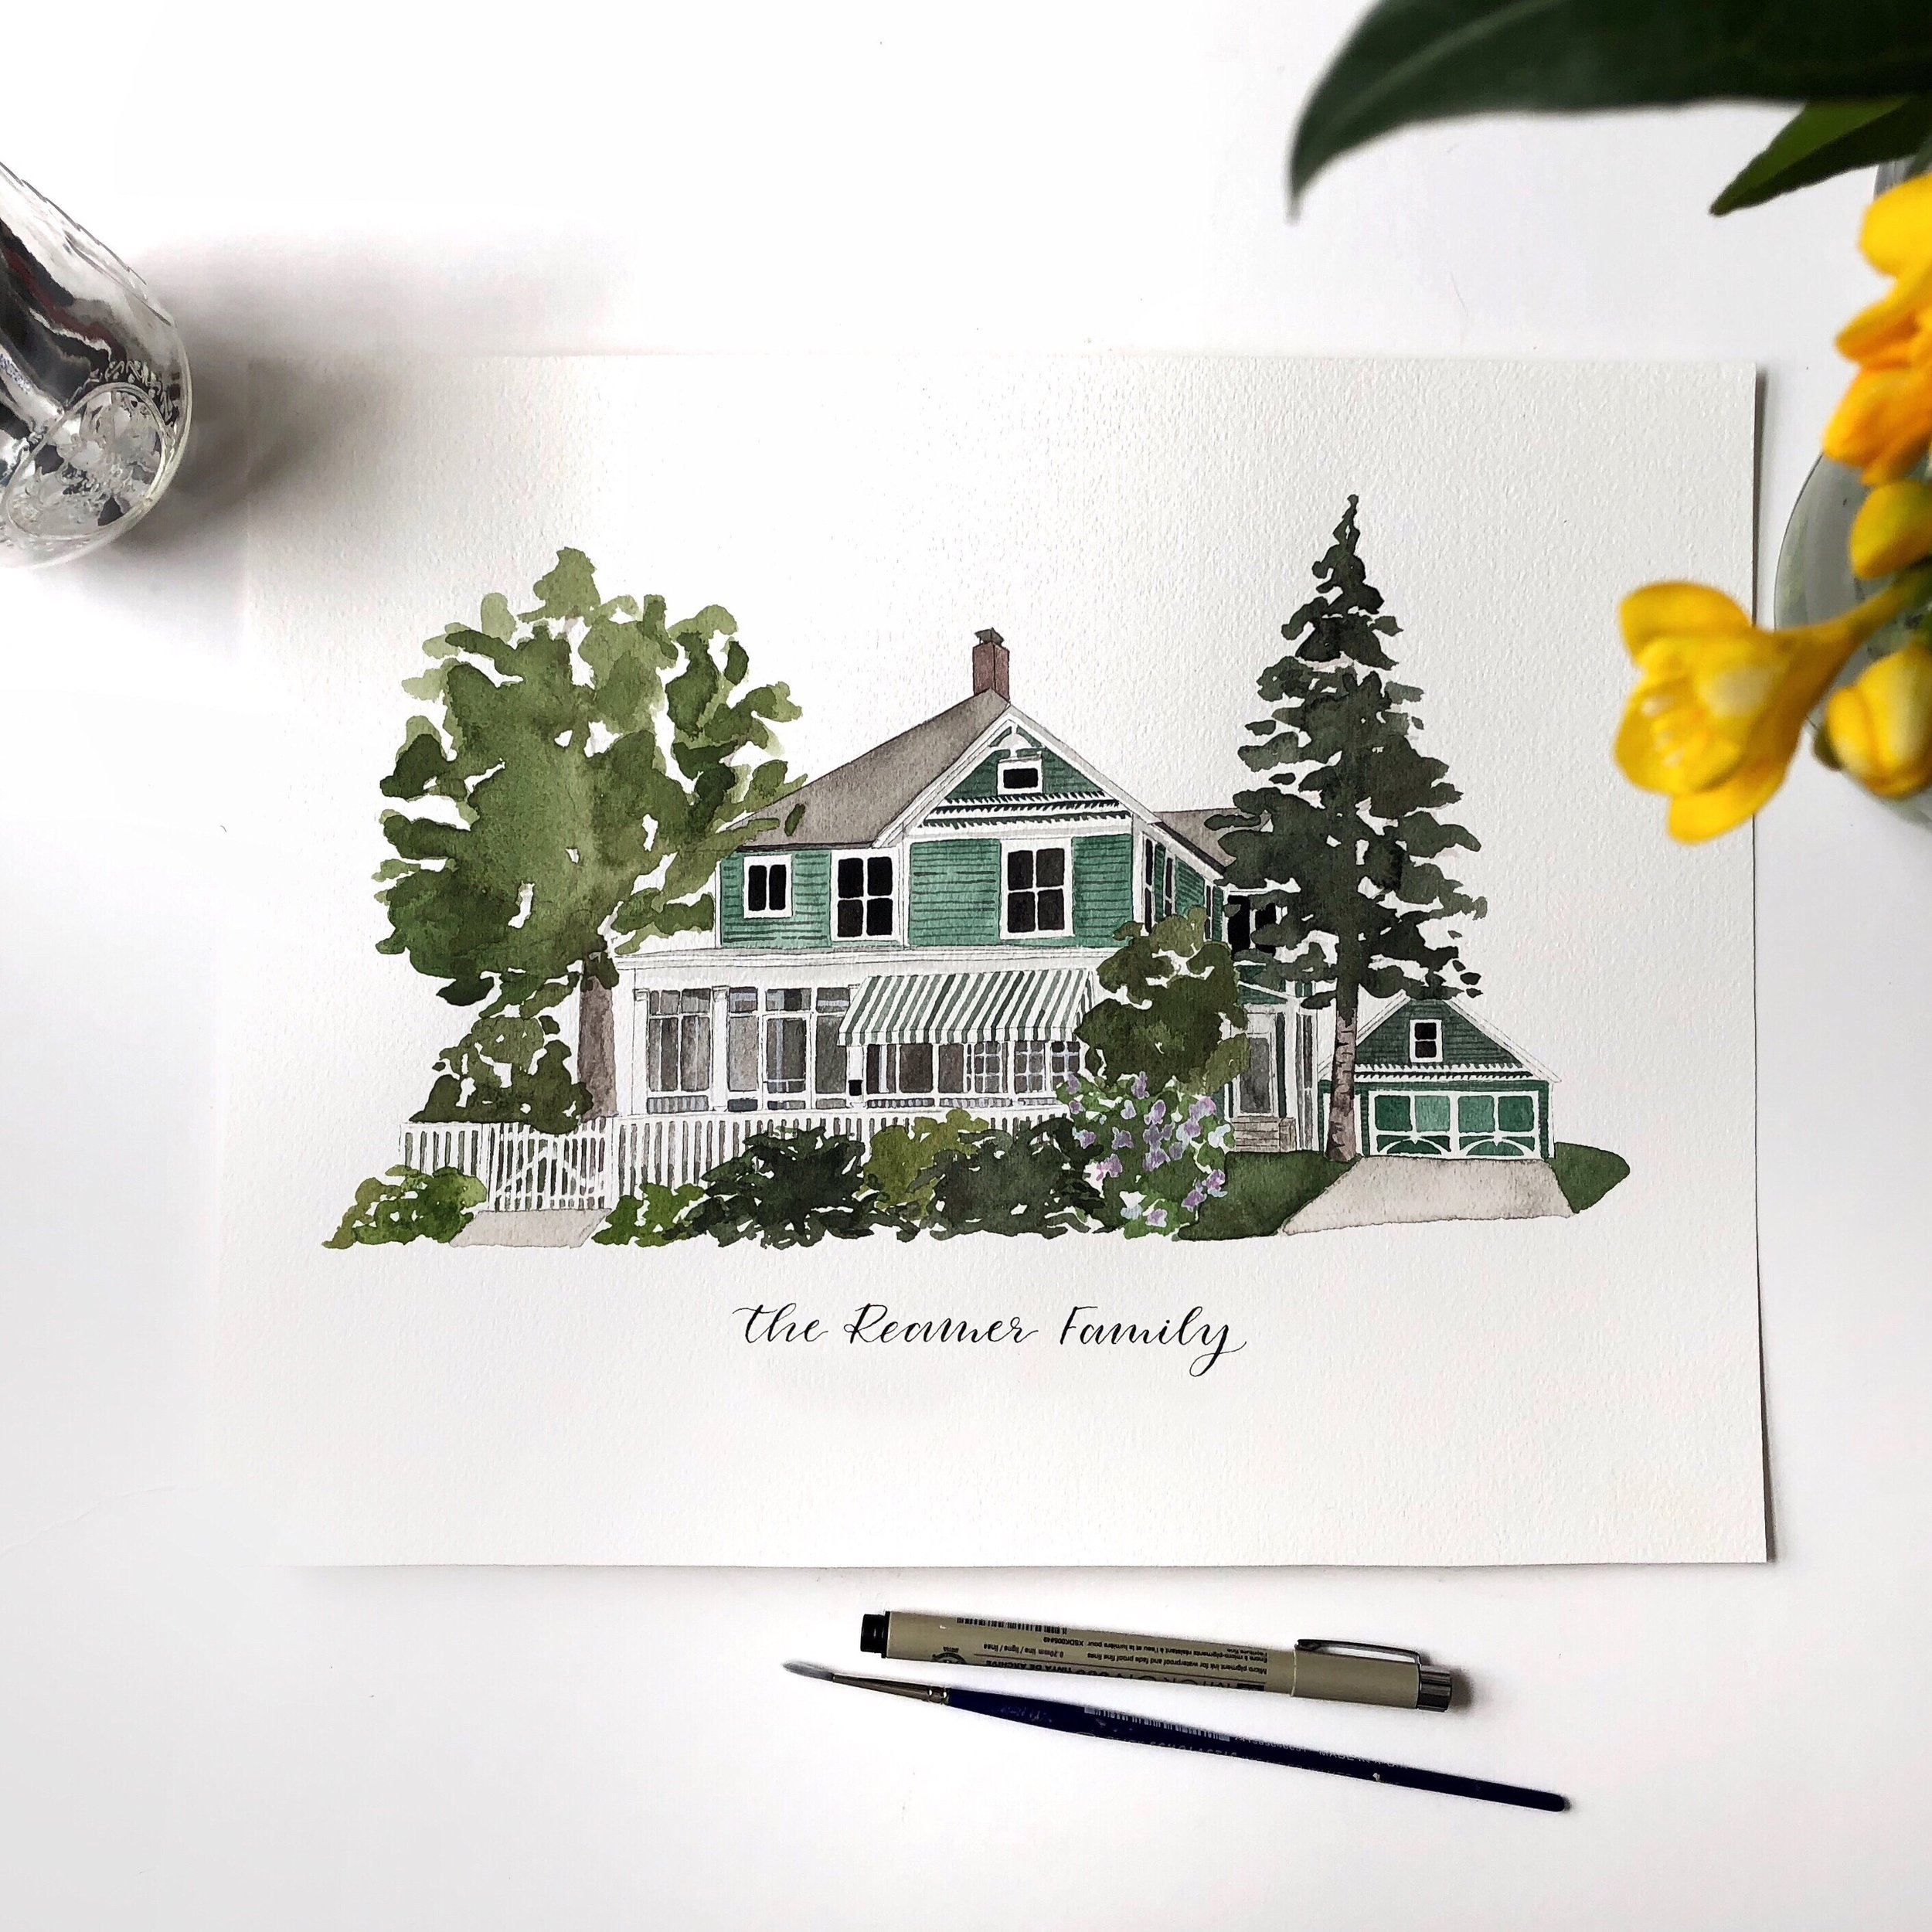 A memorable Keepsake - Are you interested in a Custom Watercolor Home Portrait?